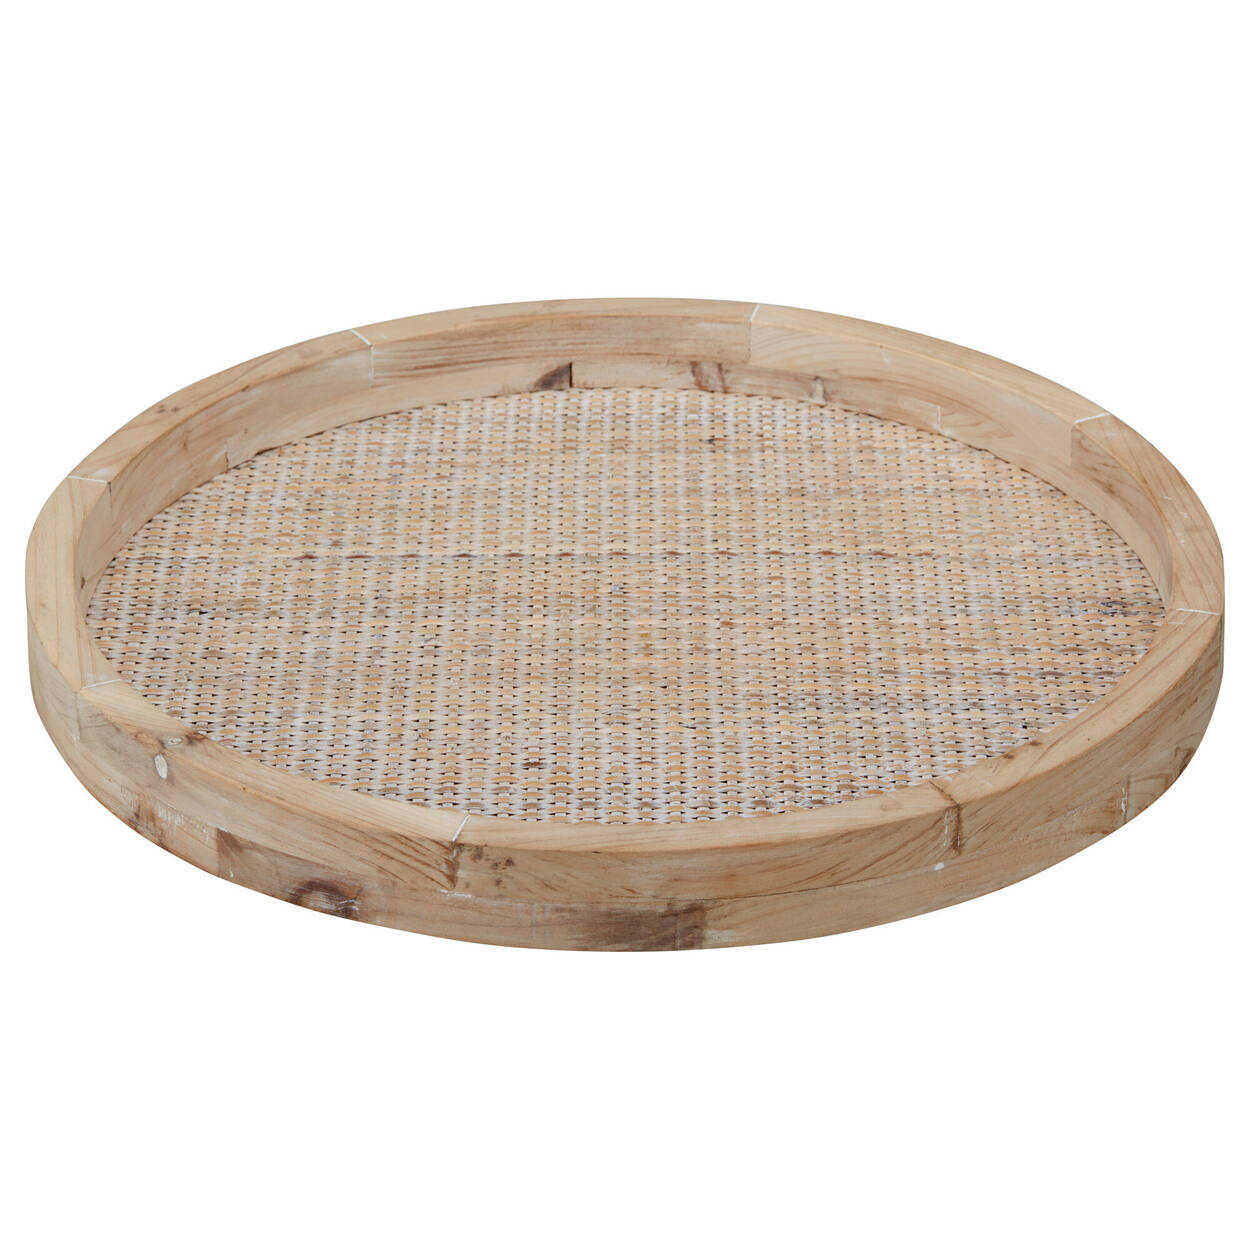 Woven Wood Round Tray